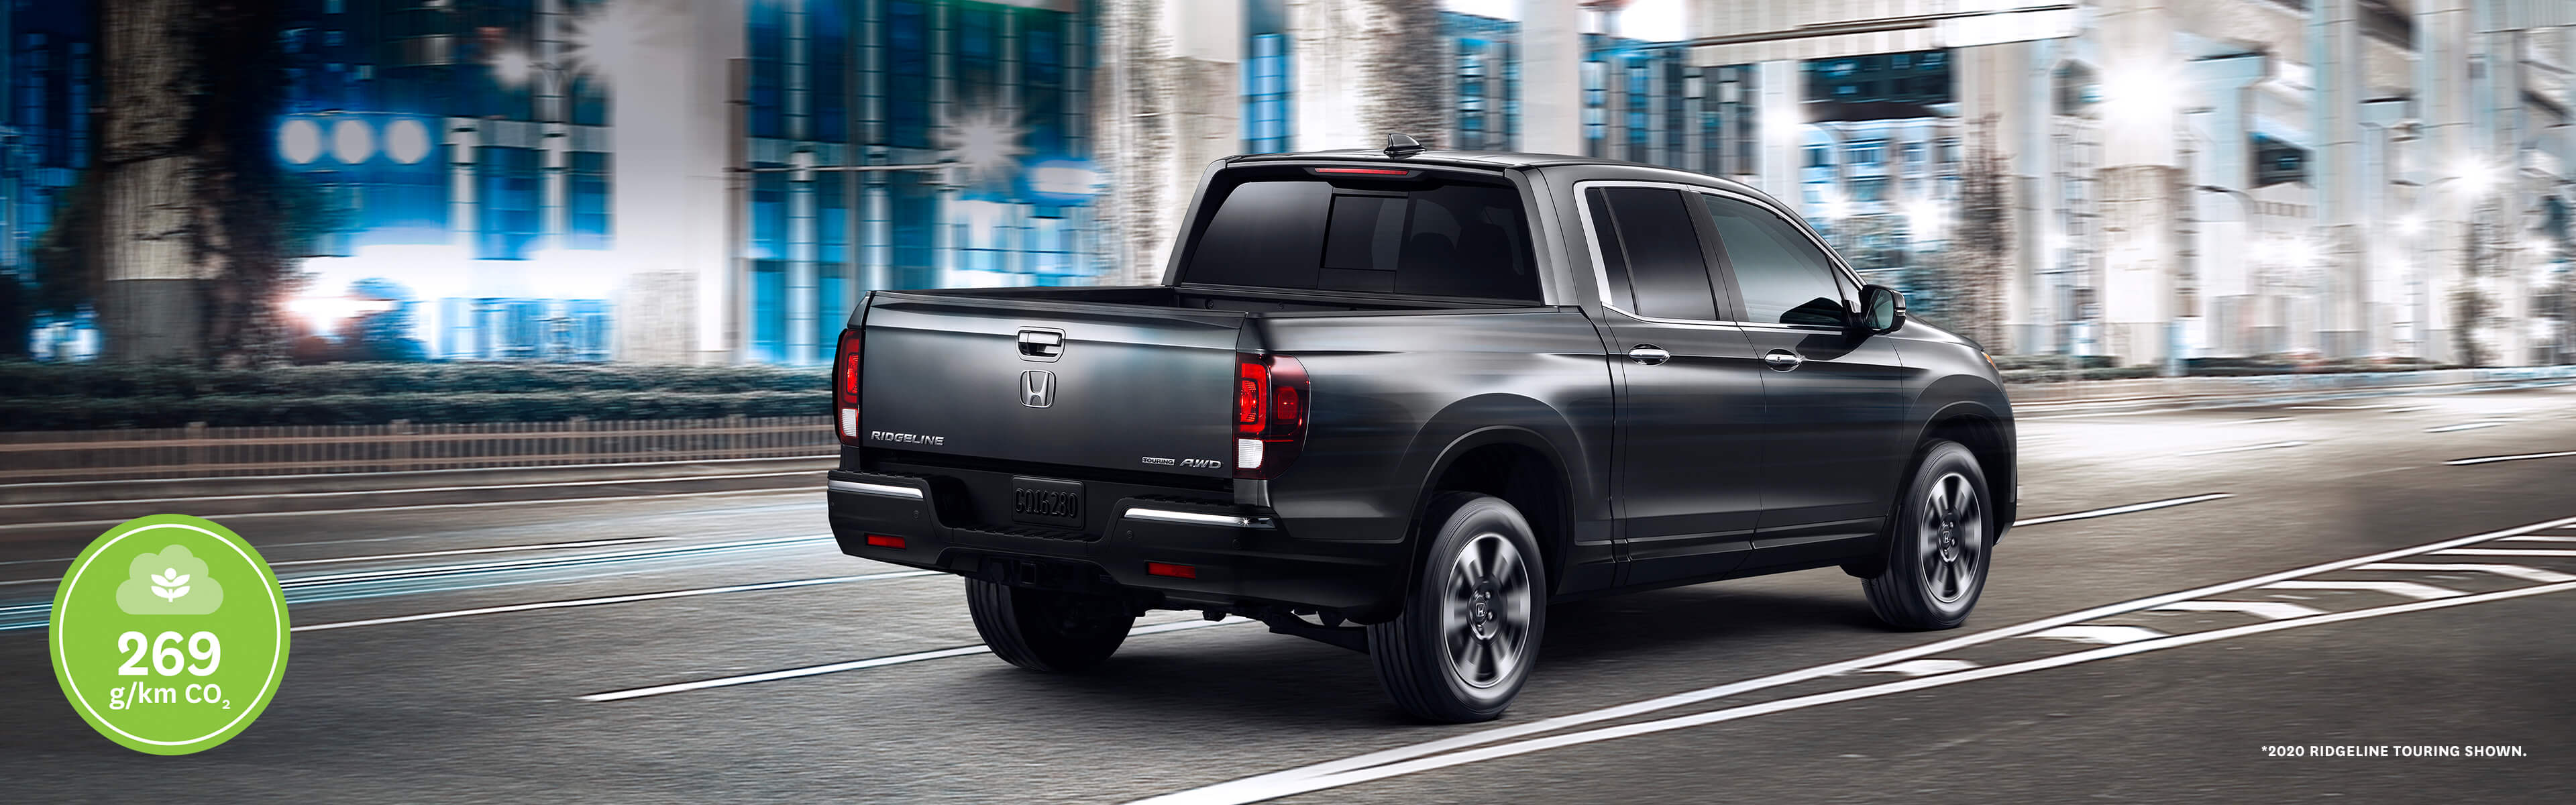 Rear of 2020 Honda Ridgeline driving in the city at night